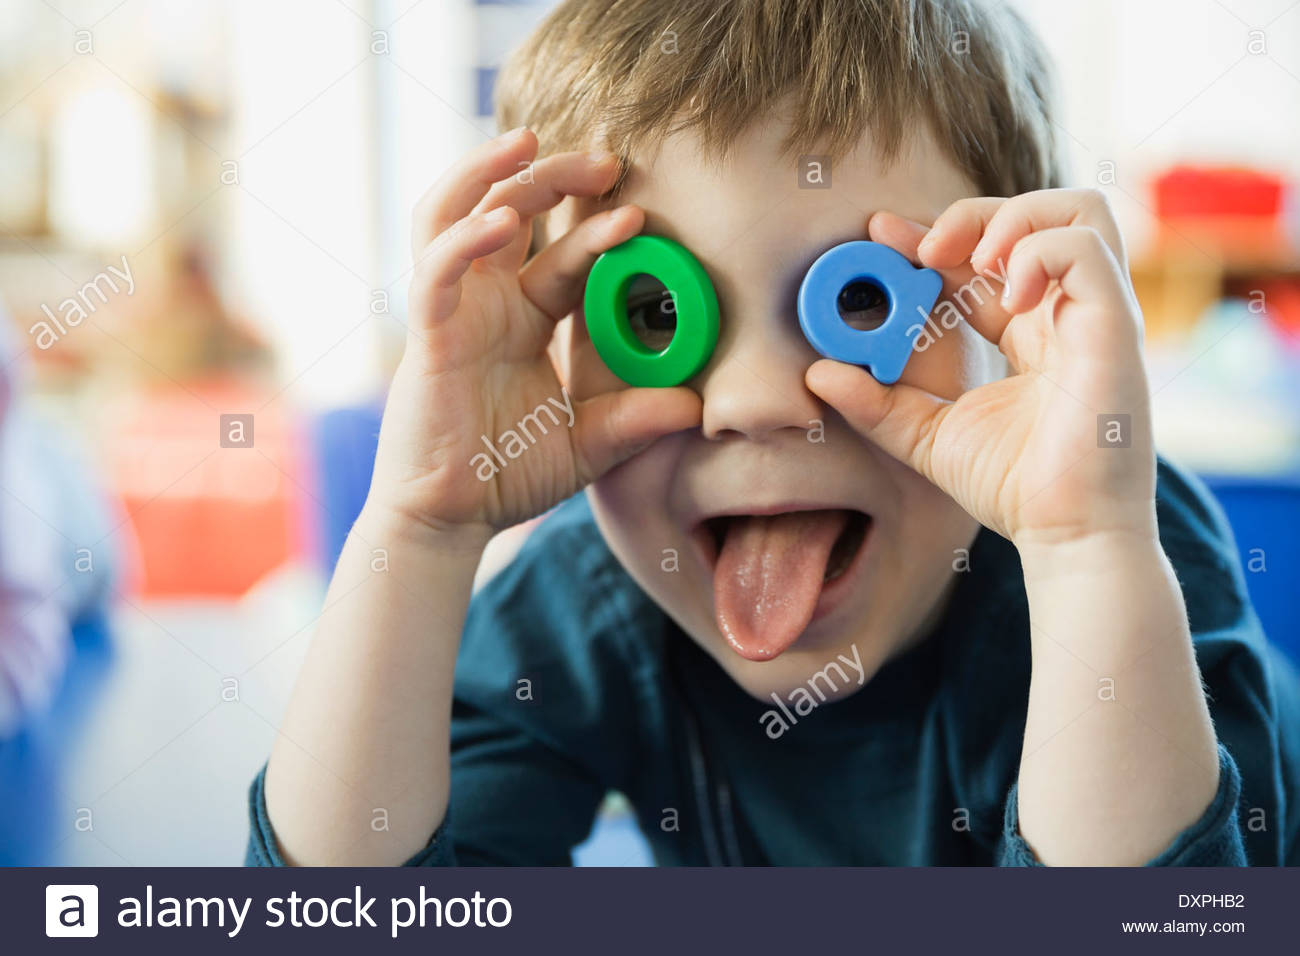 Playful boy making faces with letters - Stock Image